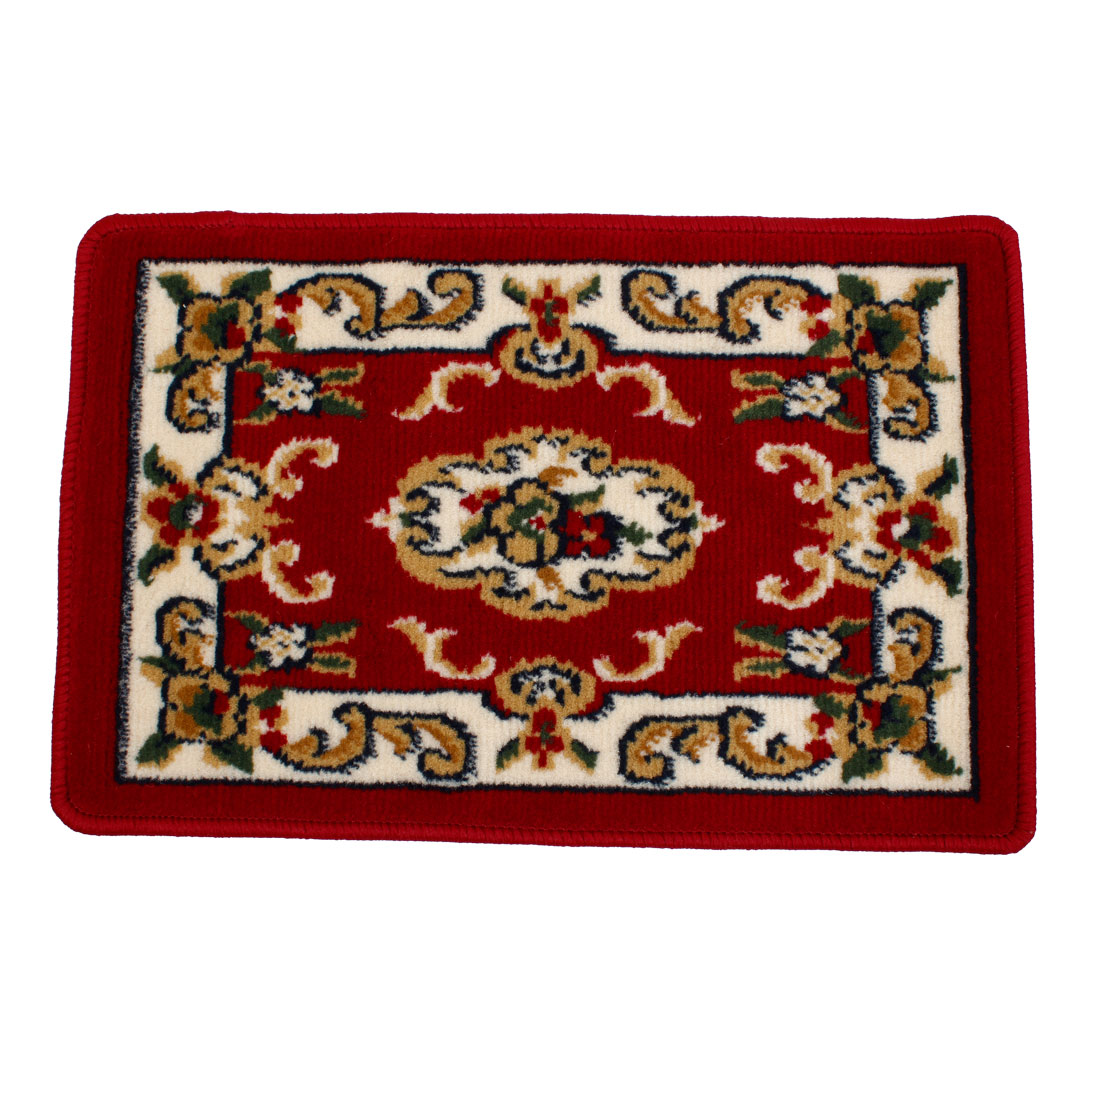 Burgundy Flower Pattern Bedroom Floor Mat Table Area Rug Carpet 60cm x 40cm